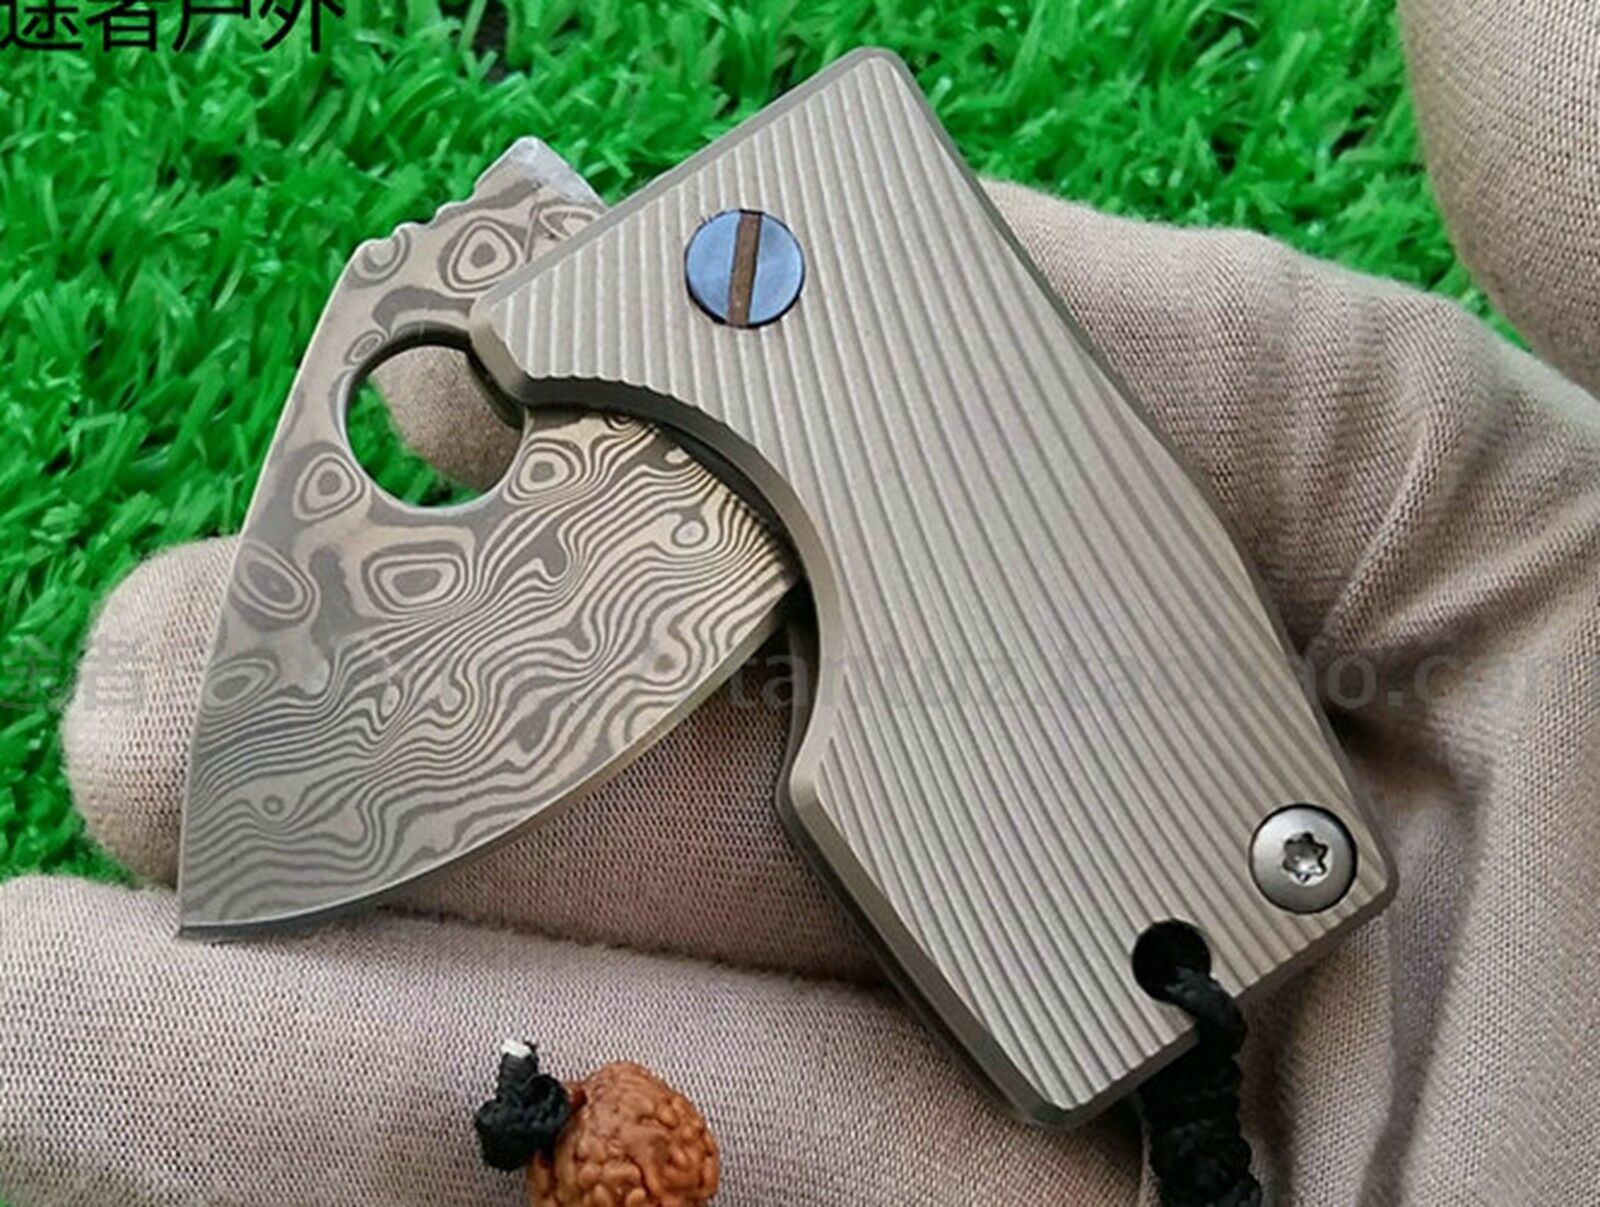 Titanium EDC MULTI TOOL  SECURITY SURVIVAL COIN KNIFE OUTDOOR Damascus BUSHCRAFT  outlet store